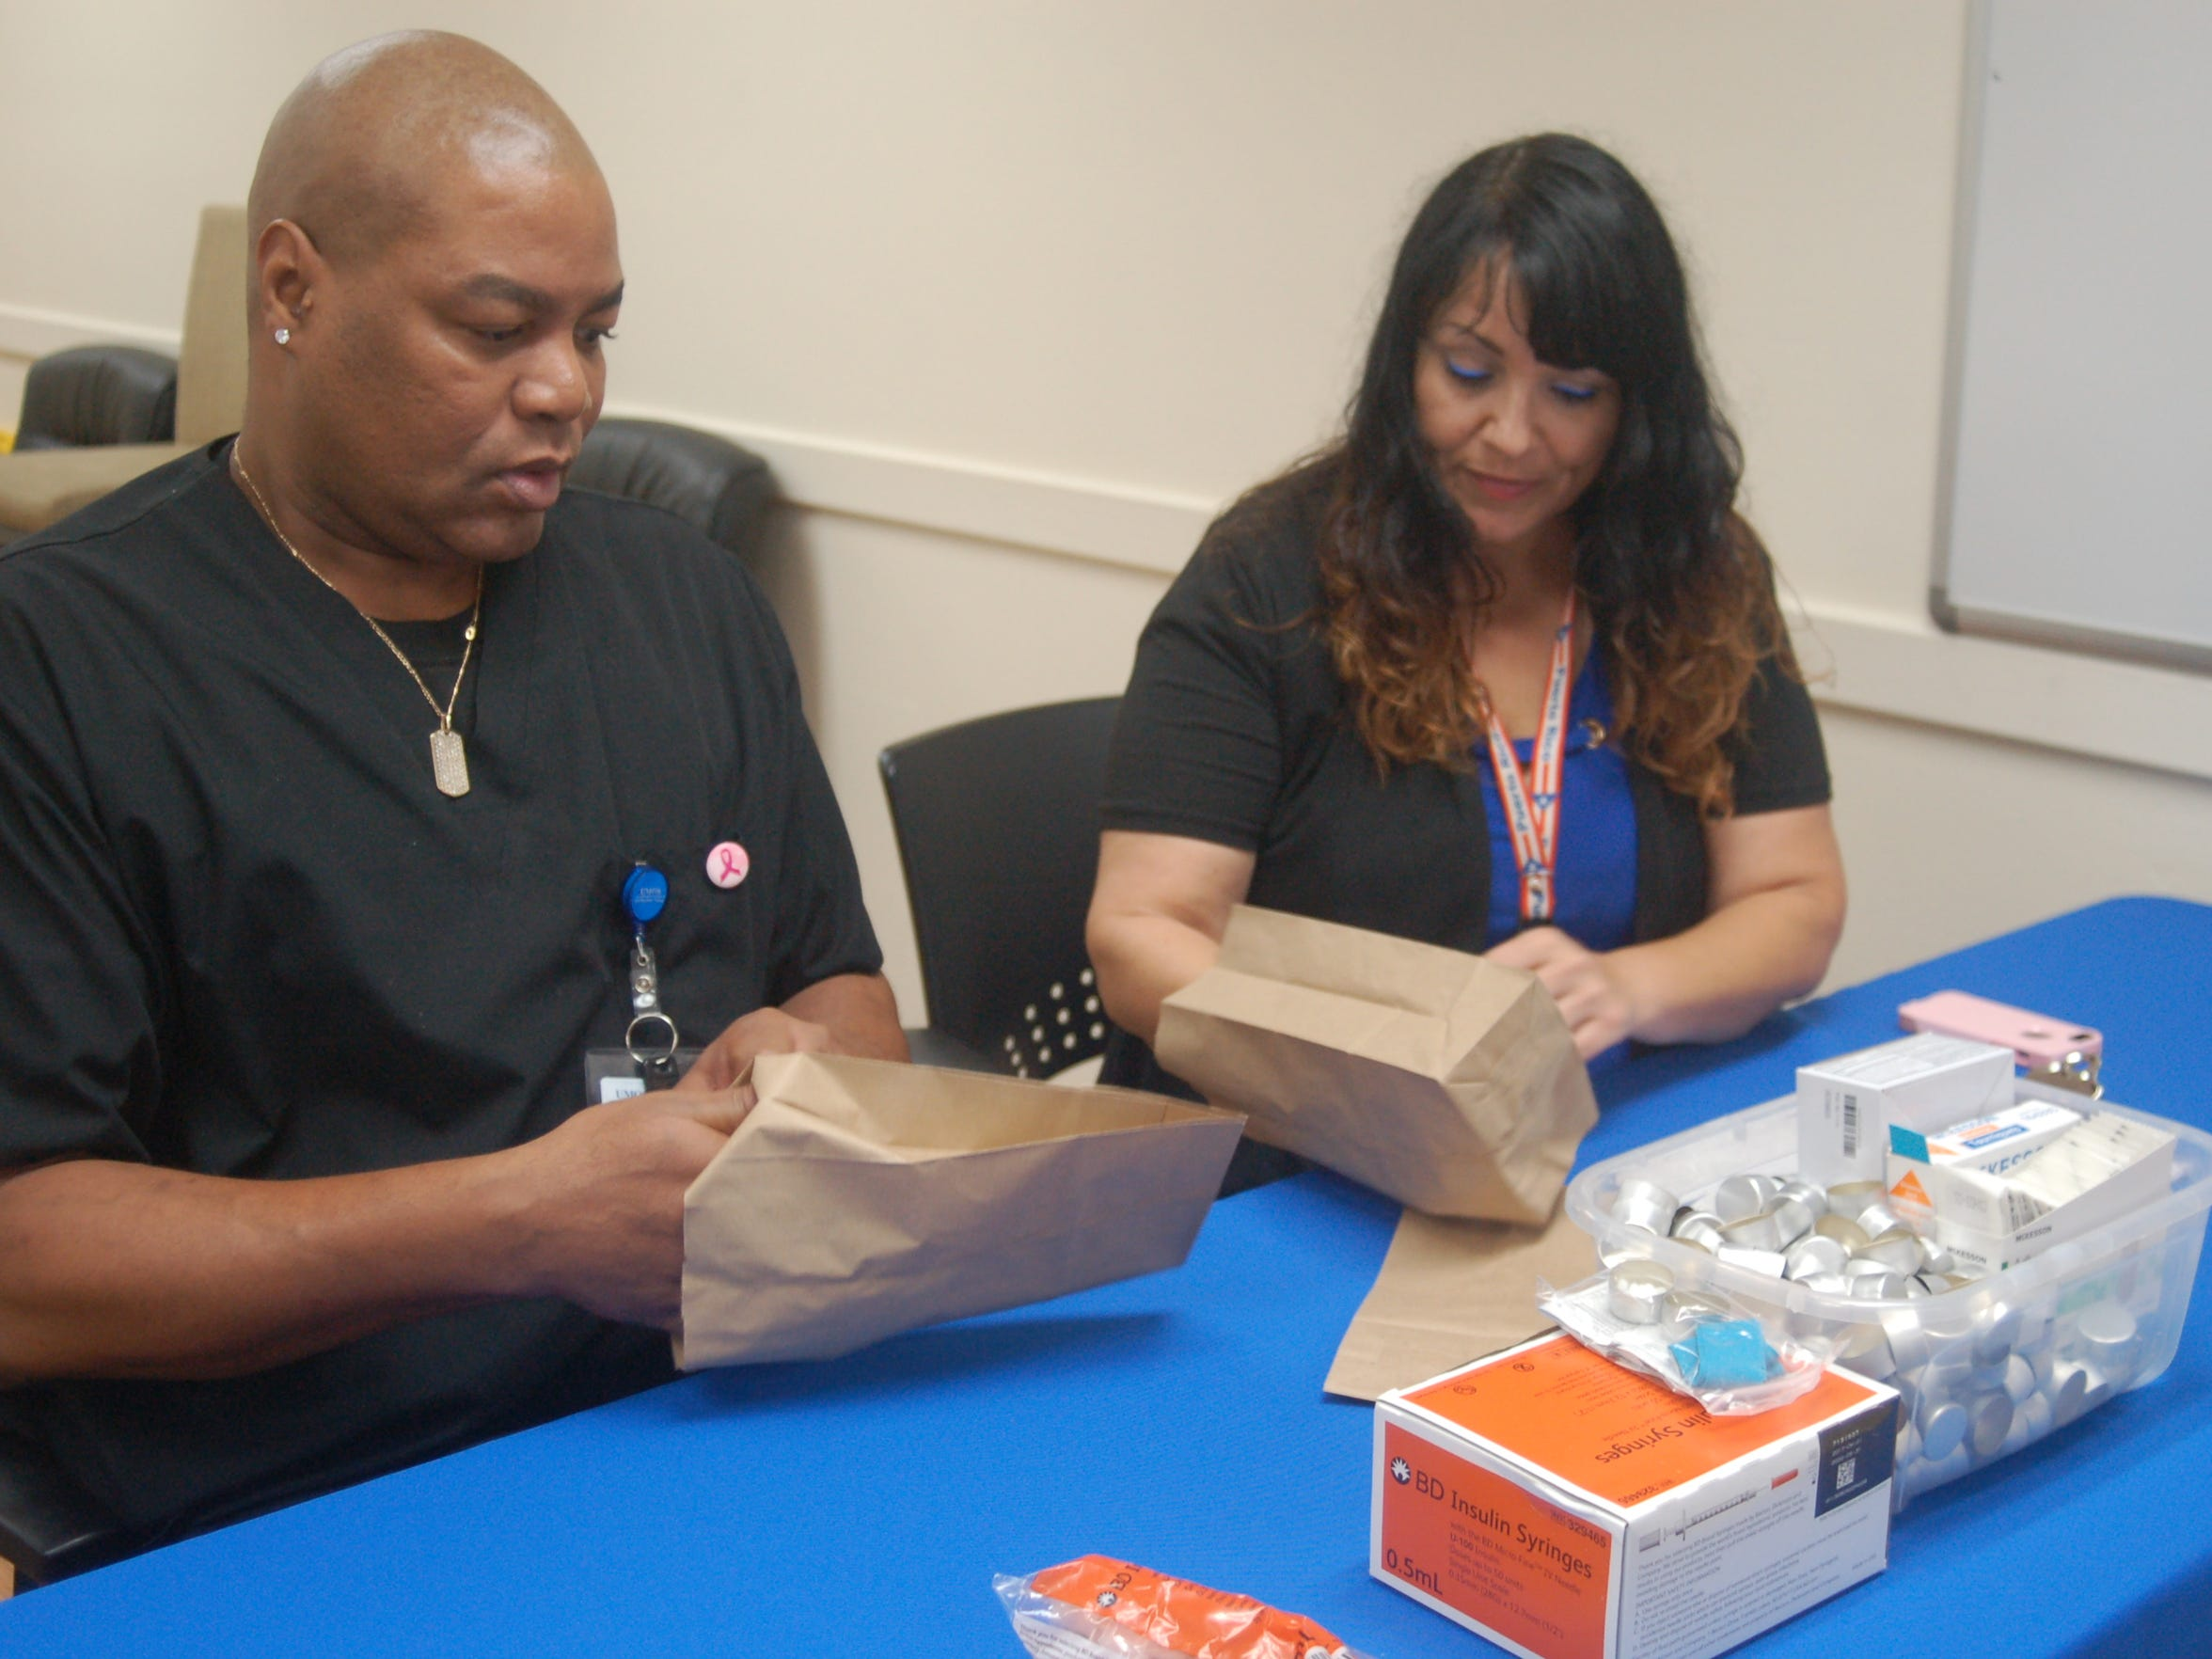 Gina Allende, health promotions manager at UMOS, and outreach worker Naronne Cole Sr. package syringes, cookers, alcohol pads and cotton pellets for clients of the UMOS Safe Exchange Program on Milwaukee's south side.